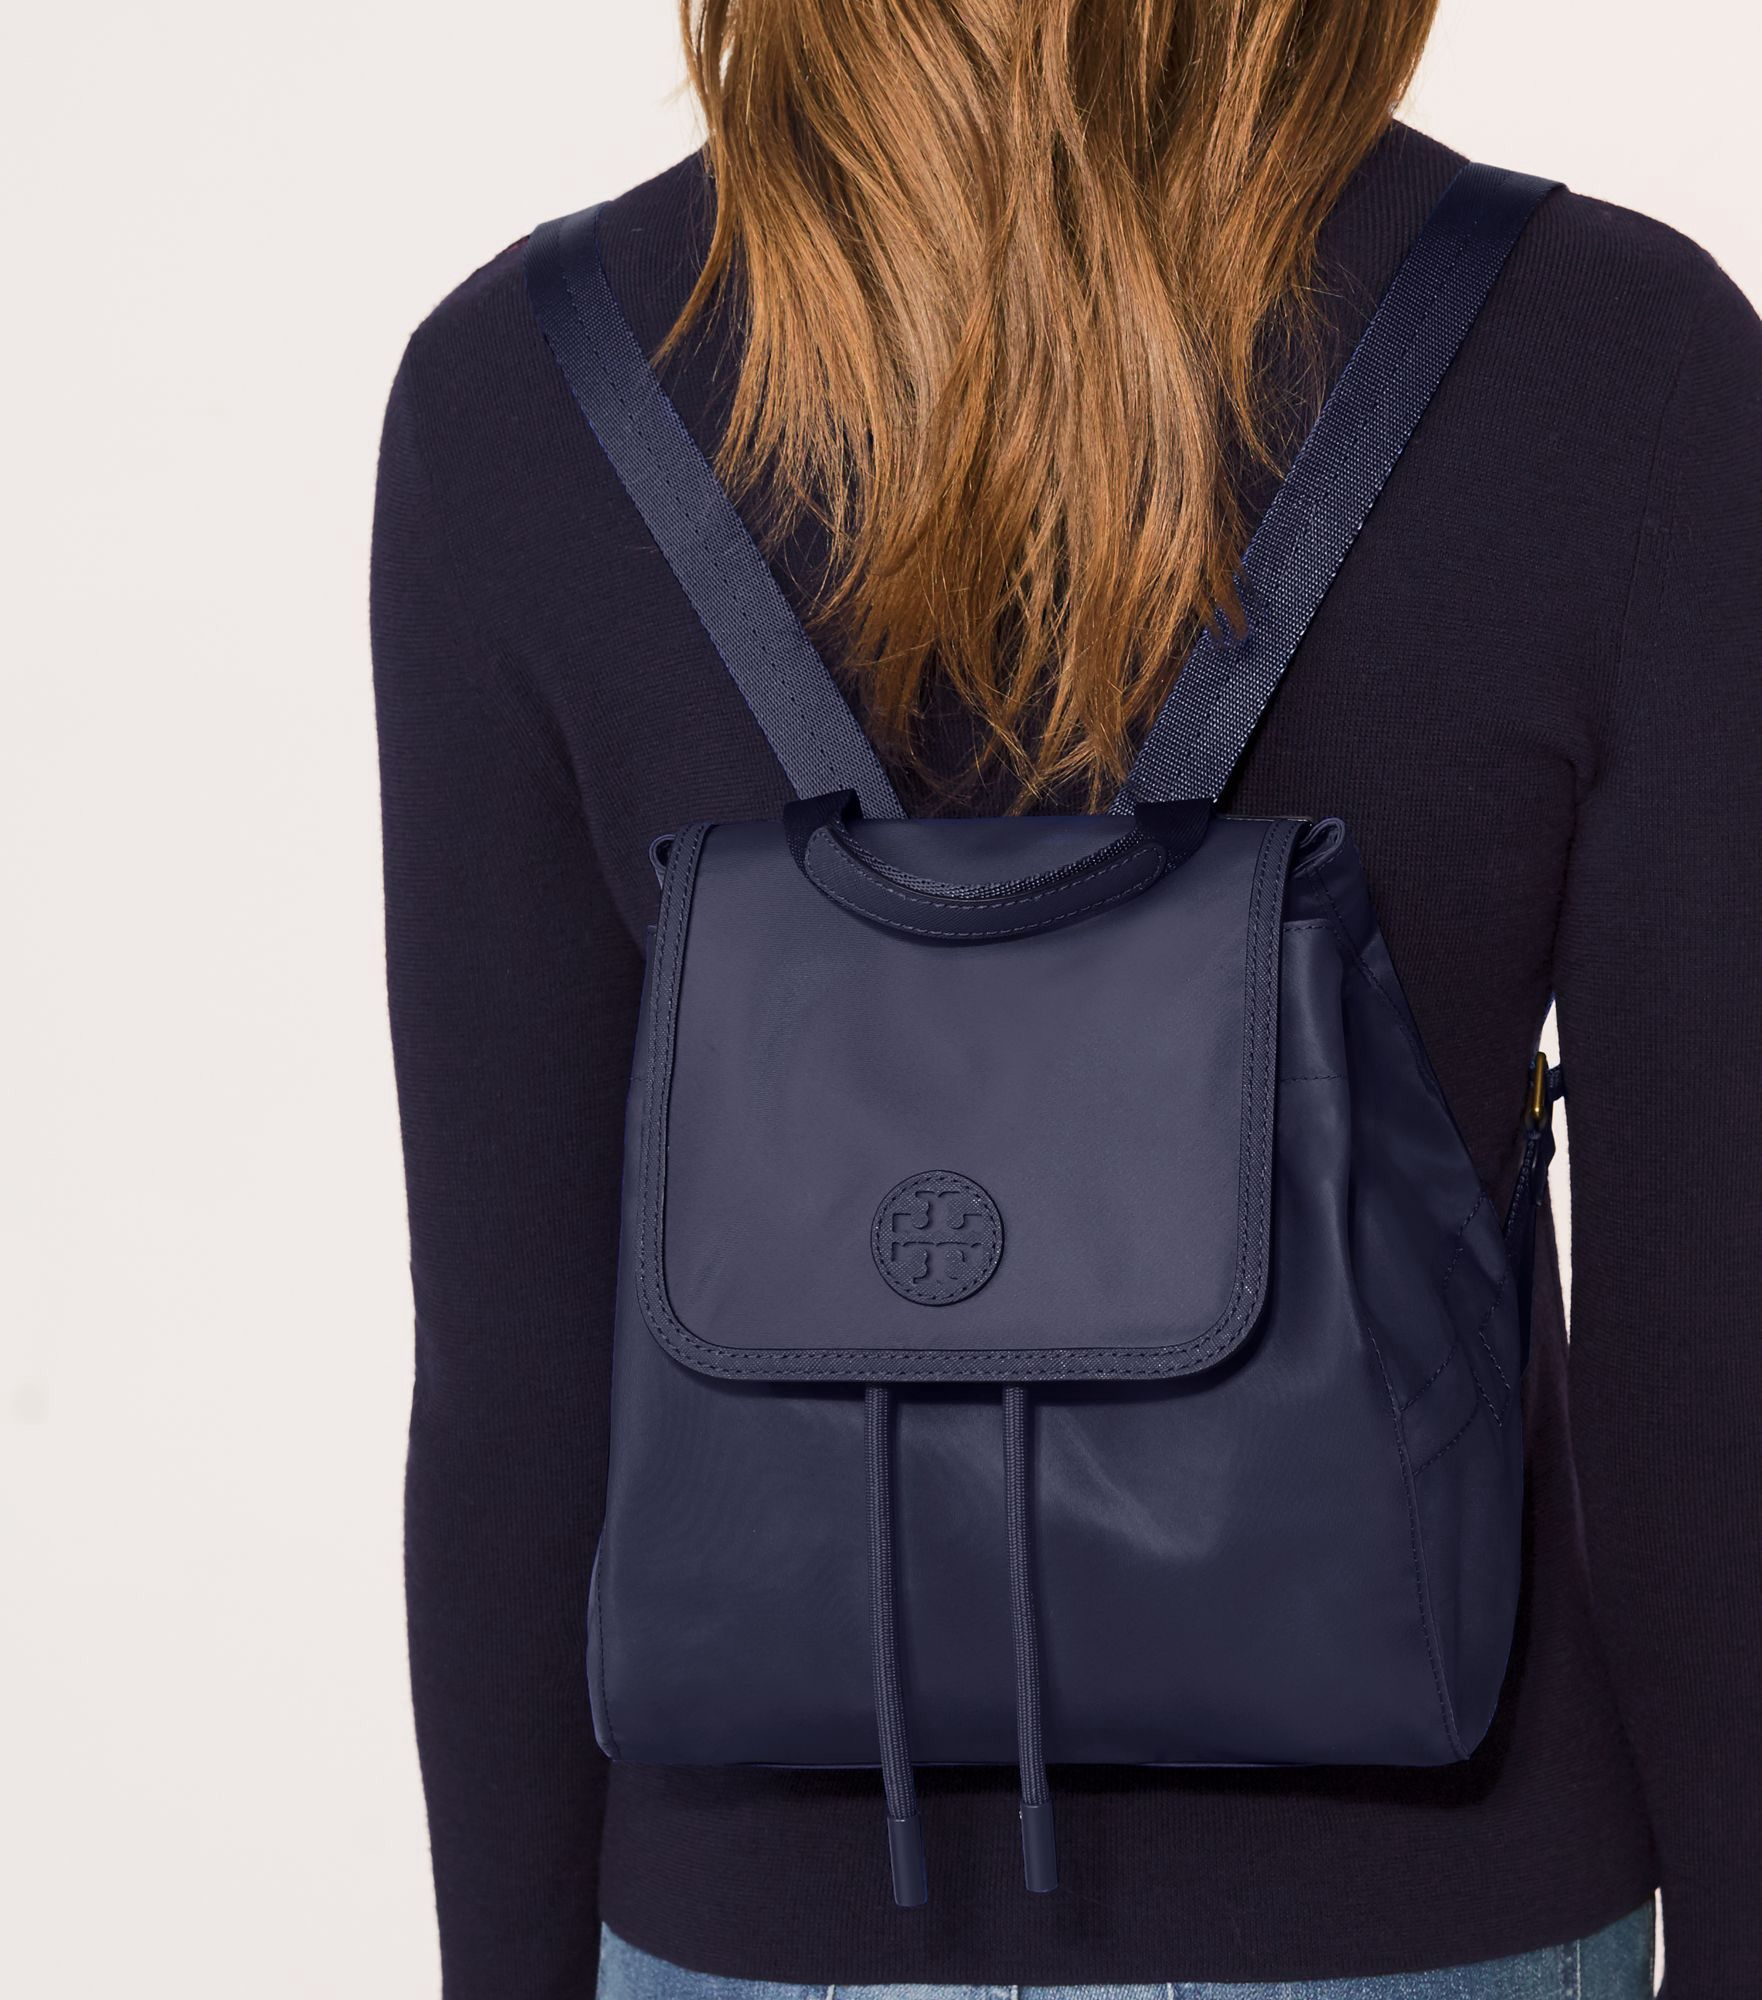 aa81e0917ae TORY BURCH Scout Small Backpack.  toryburch  bags  leather  nylon  backpacks